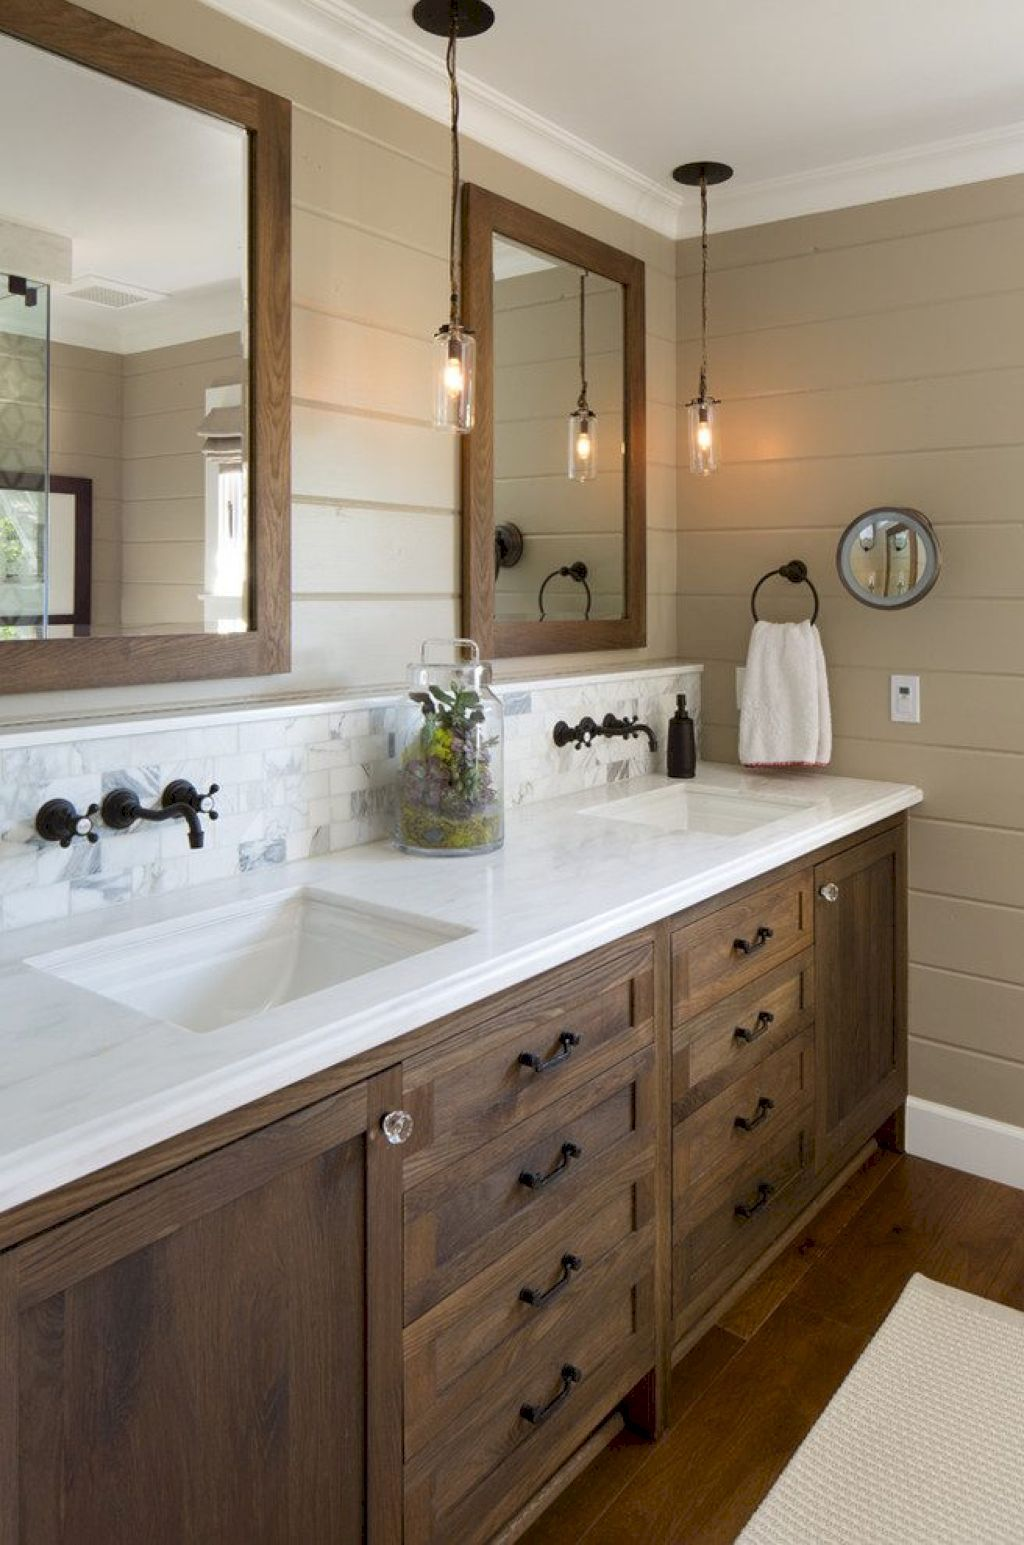 Best Master Bathroom Designs Fascinating 50 Best Master Bathroom Remodel Ideas  Master Bathrooms Bath And Design Ideas